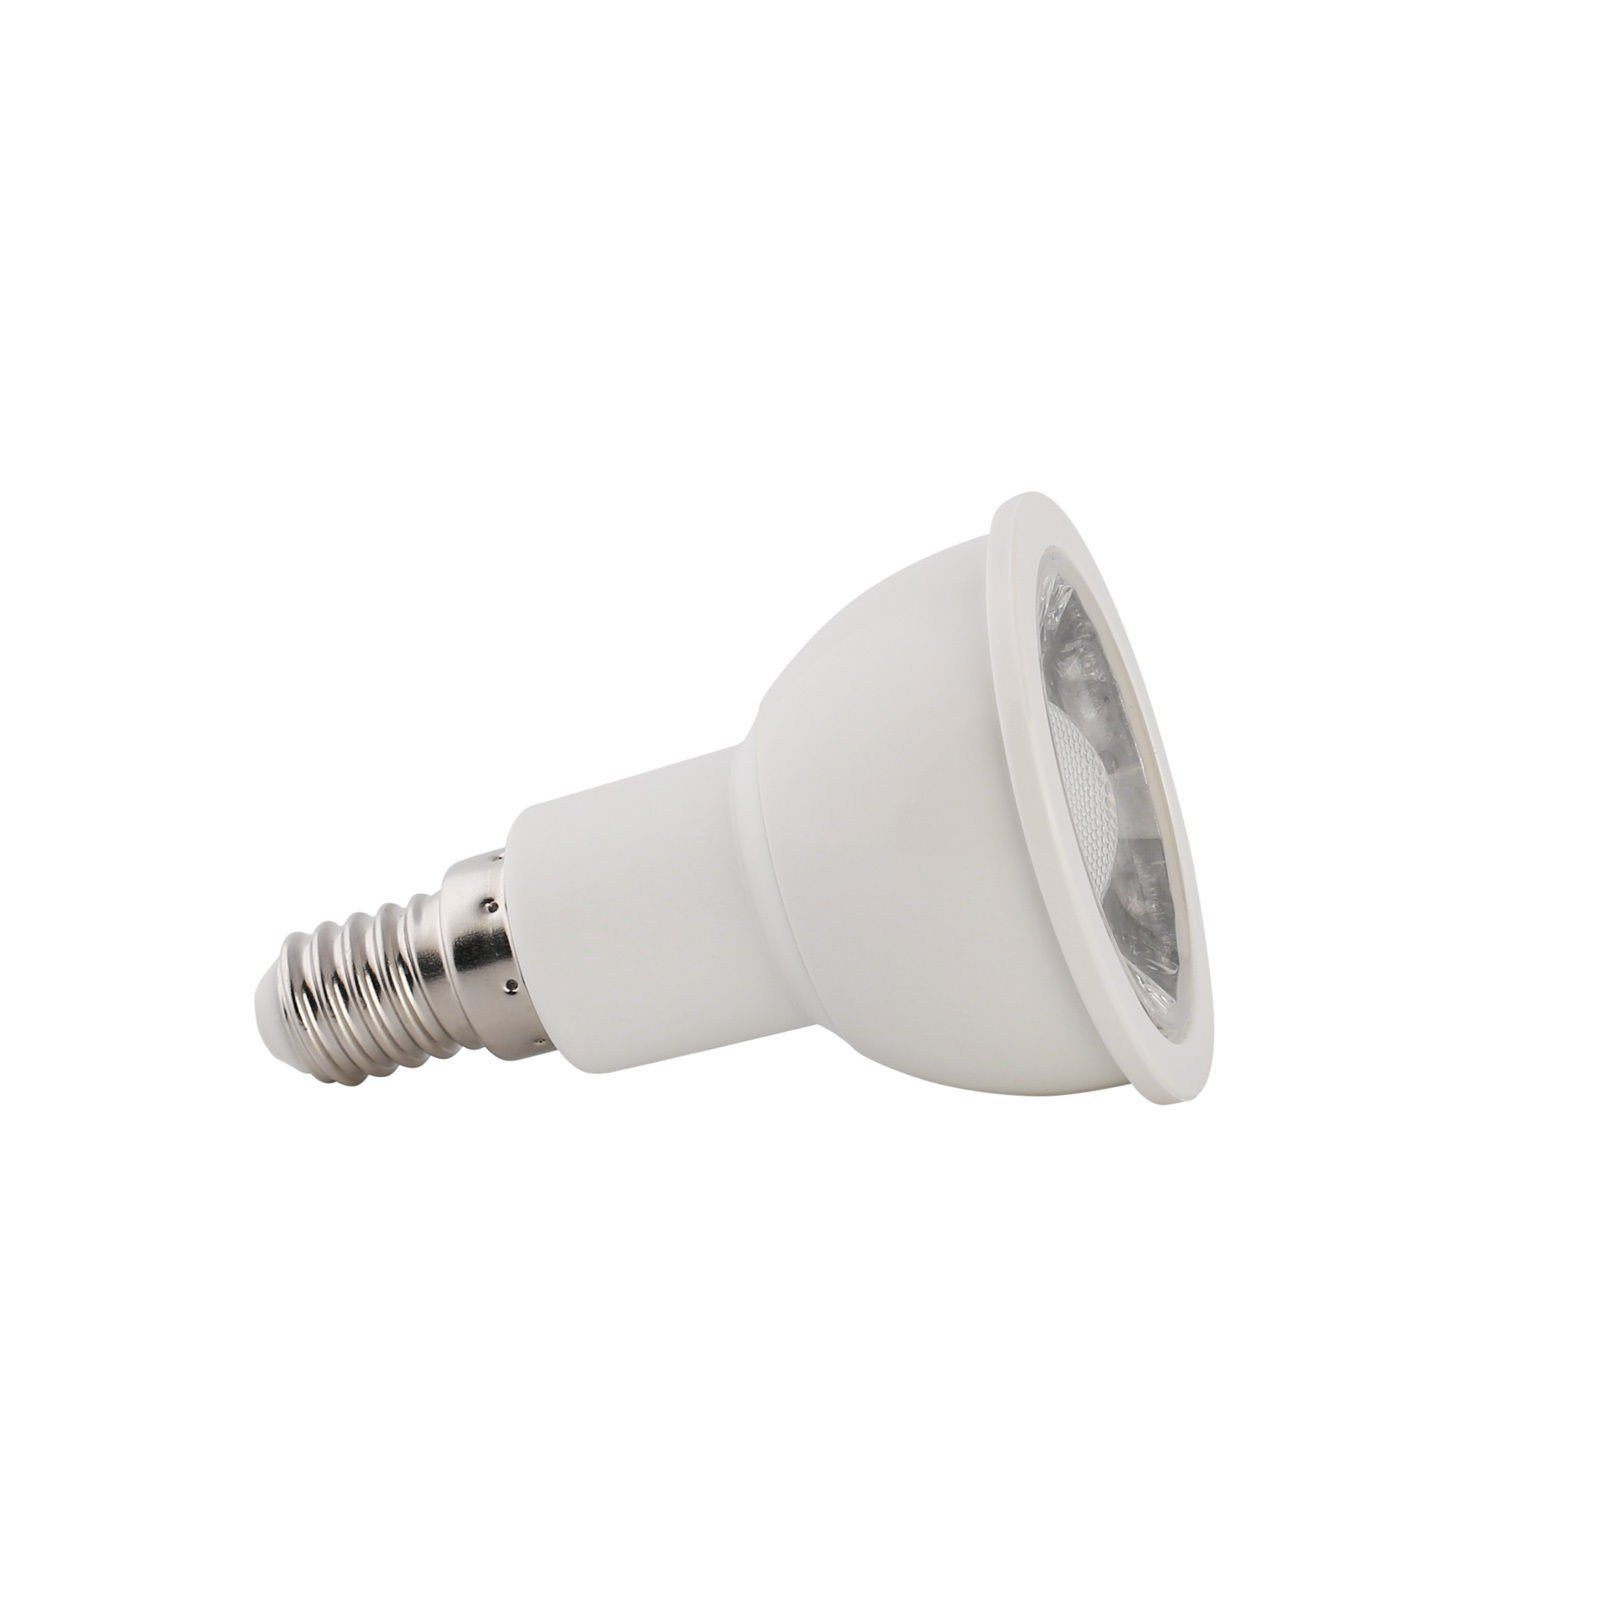 Hayward SPX0551Z4 Replacement Bulb, Astrolite II, 115V, 60W equivalent LED Home & Garden > Lighting > Light Bulbs Hayward